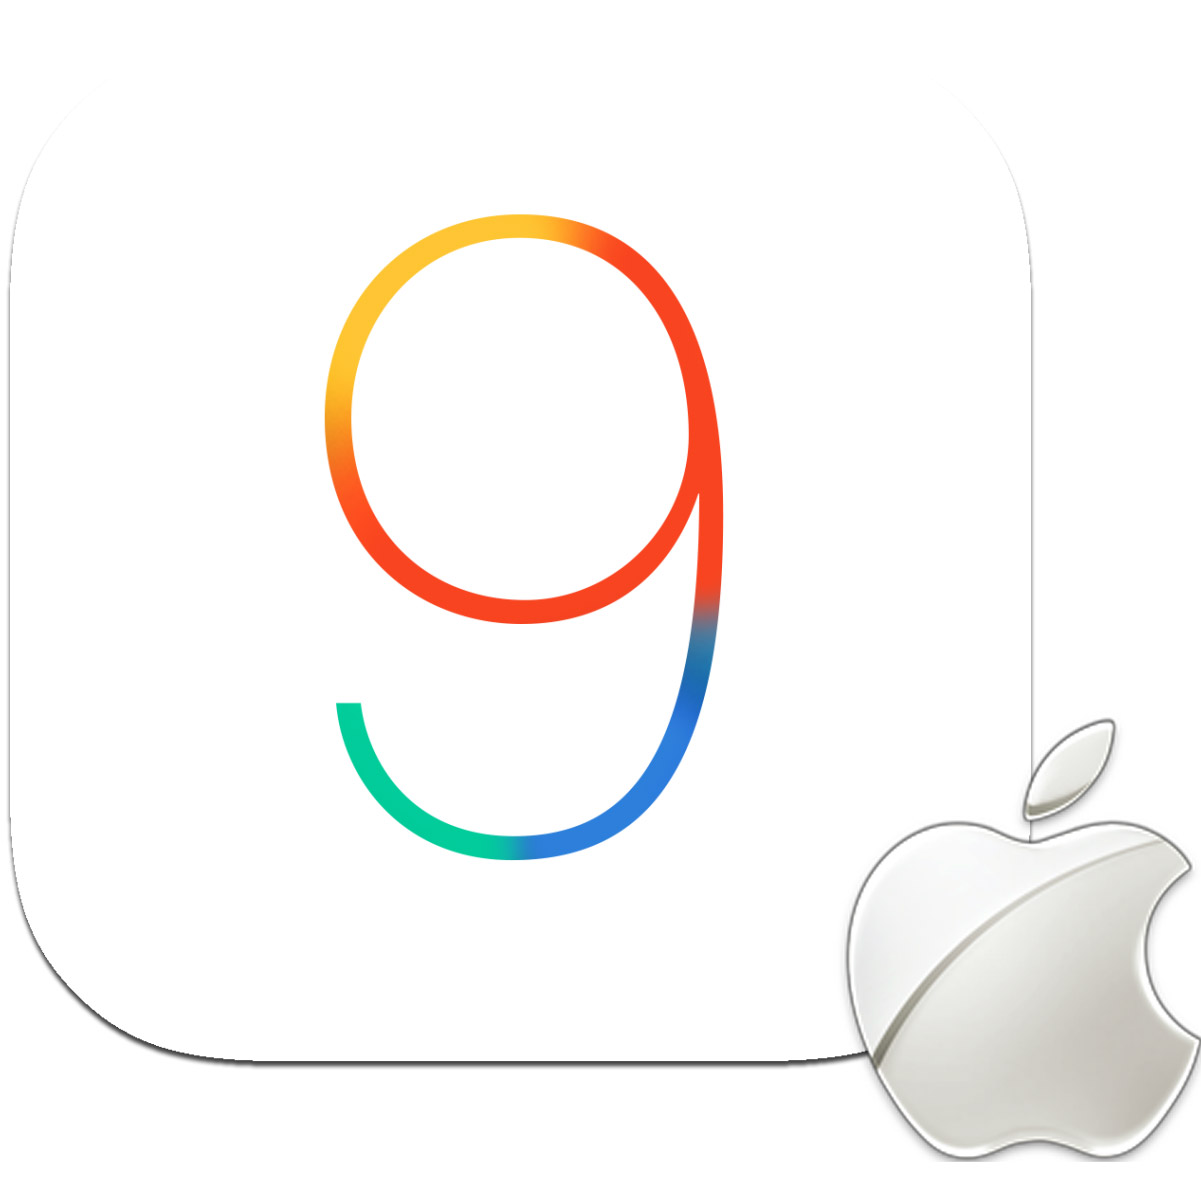 Apple Ships iOS 9.3, Available Now